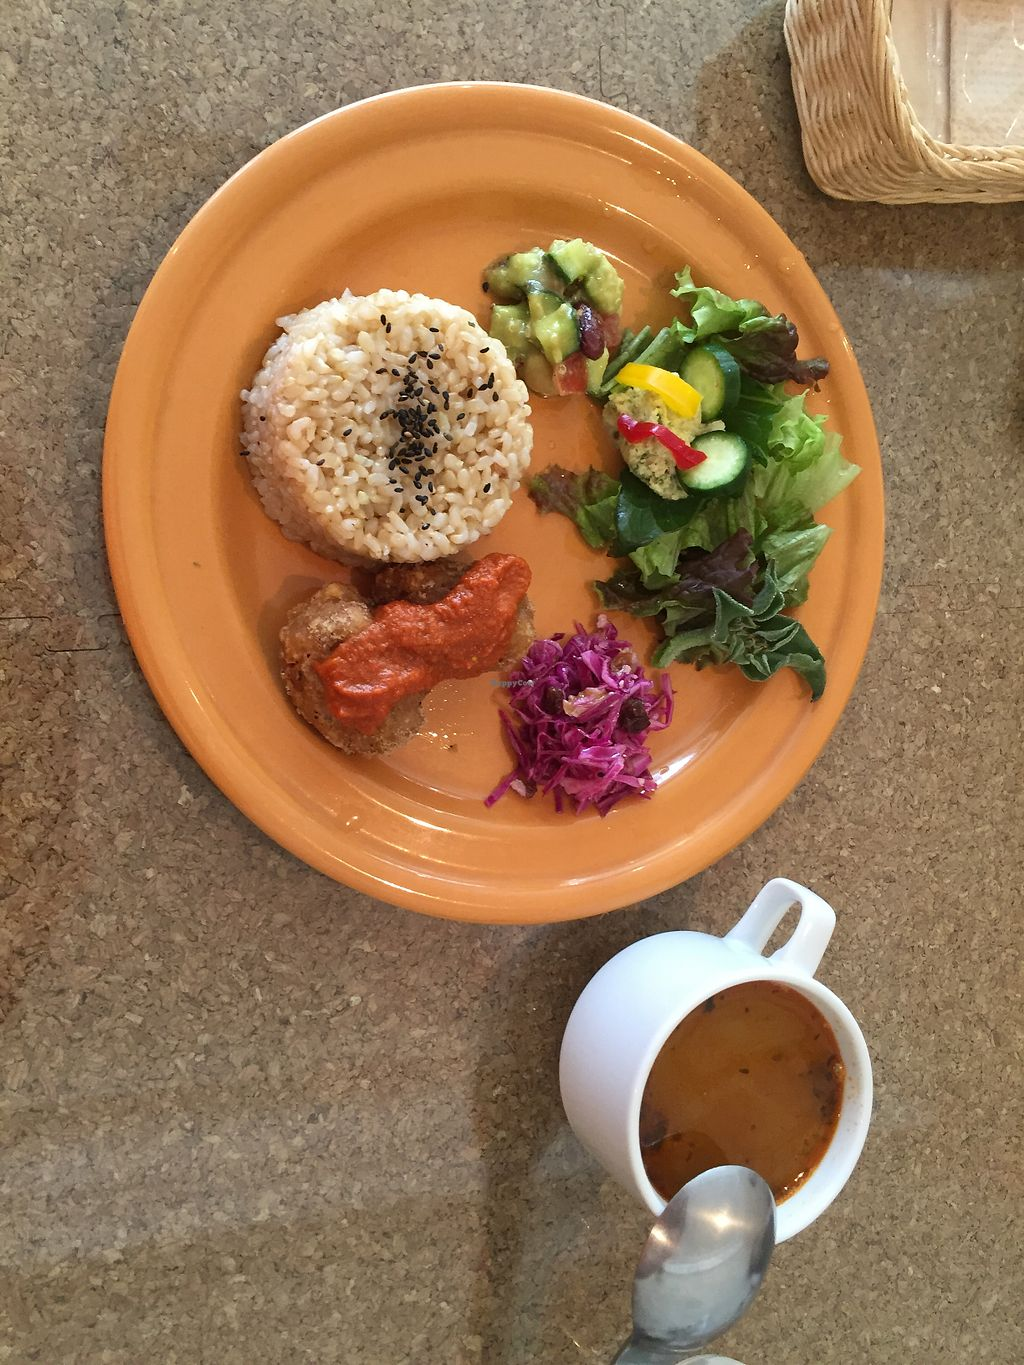 """Photo of DevaDeva Cafe  by <a href=""""/members/profile/iokan"""">iokan</a> <br/>Daily special / set menu. Weekend edition <br/> April 30, 2018  - <a href='/contact/abuse/image/5939/393058'>Report</a>"""